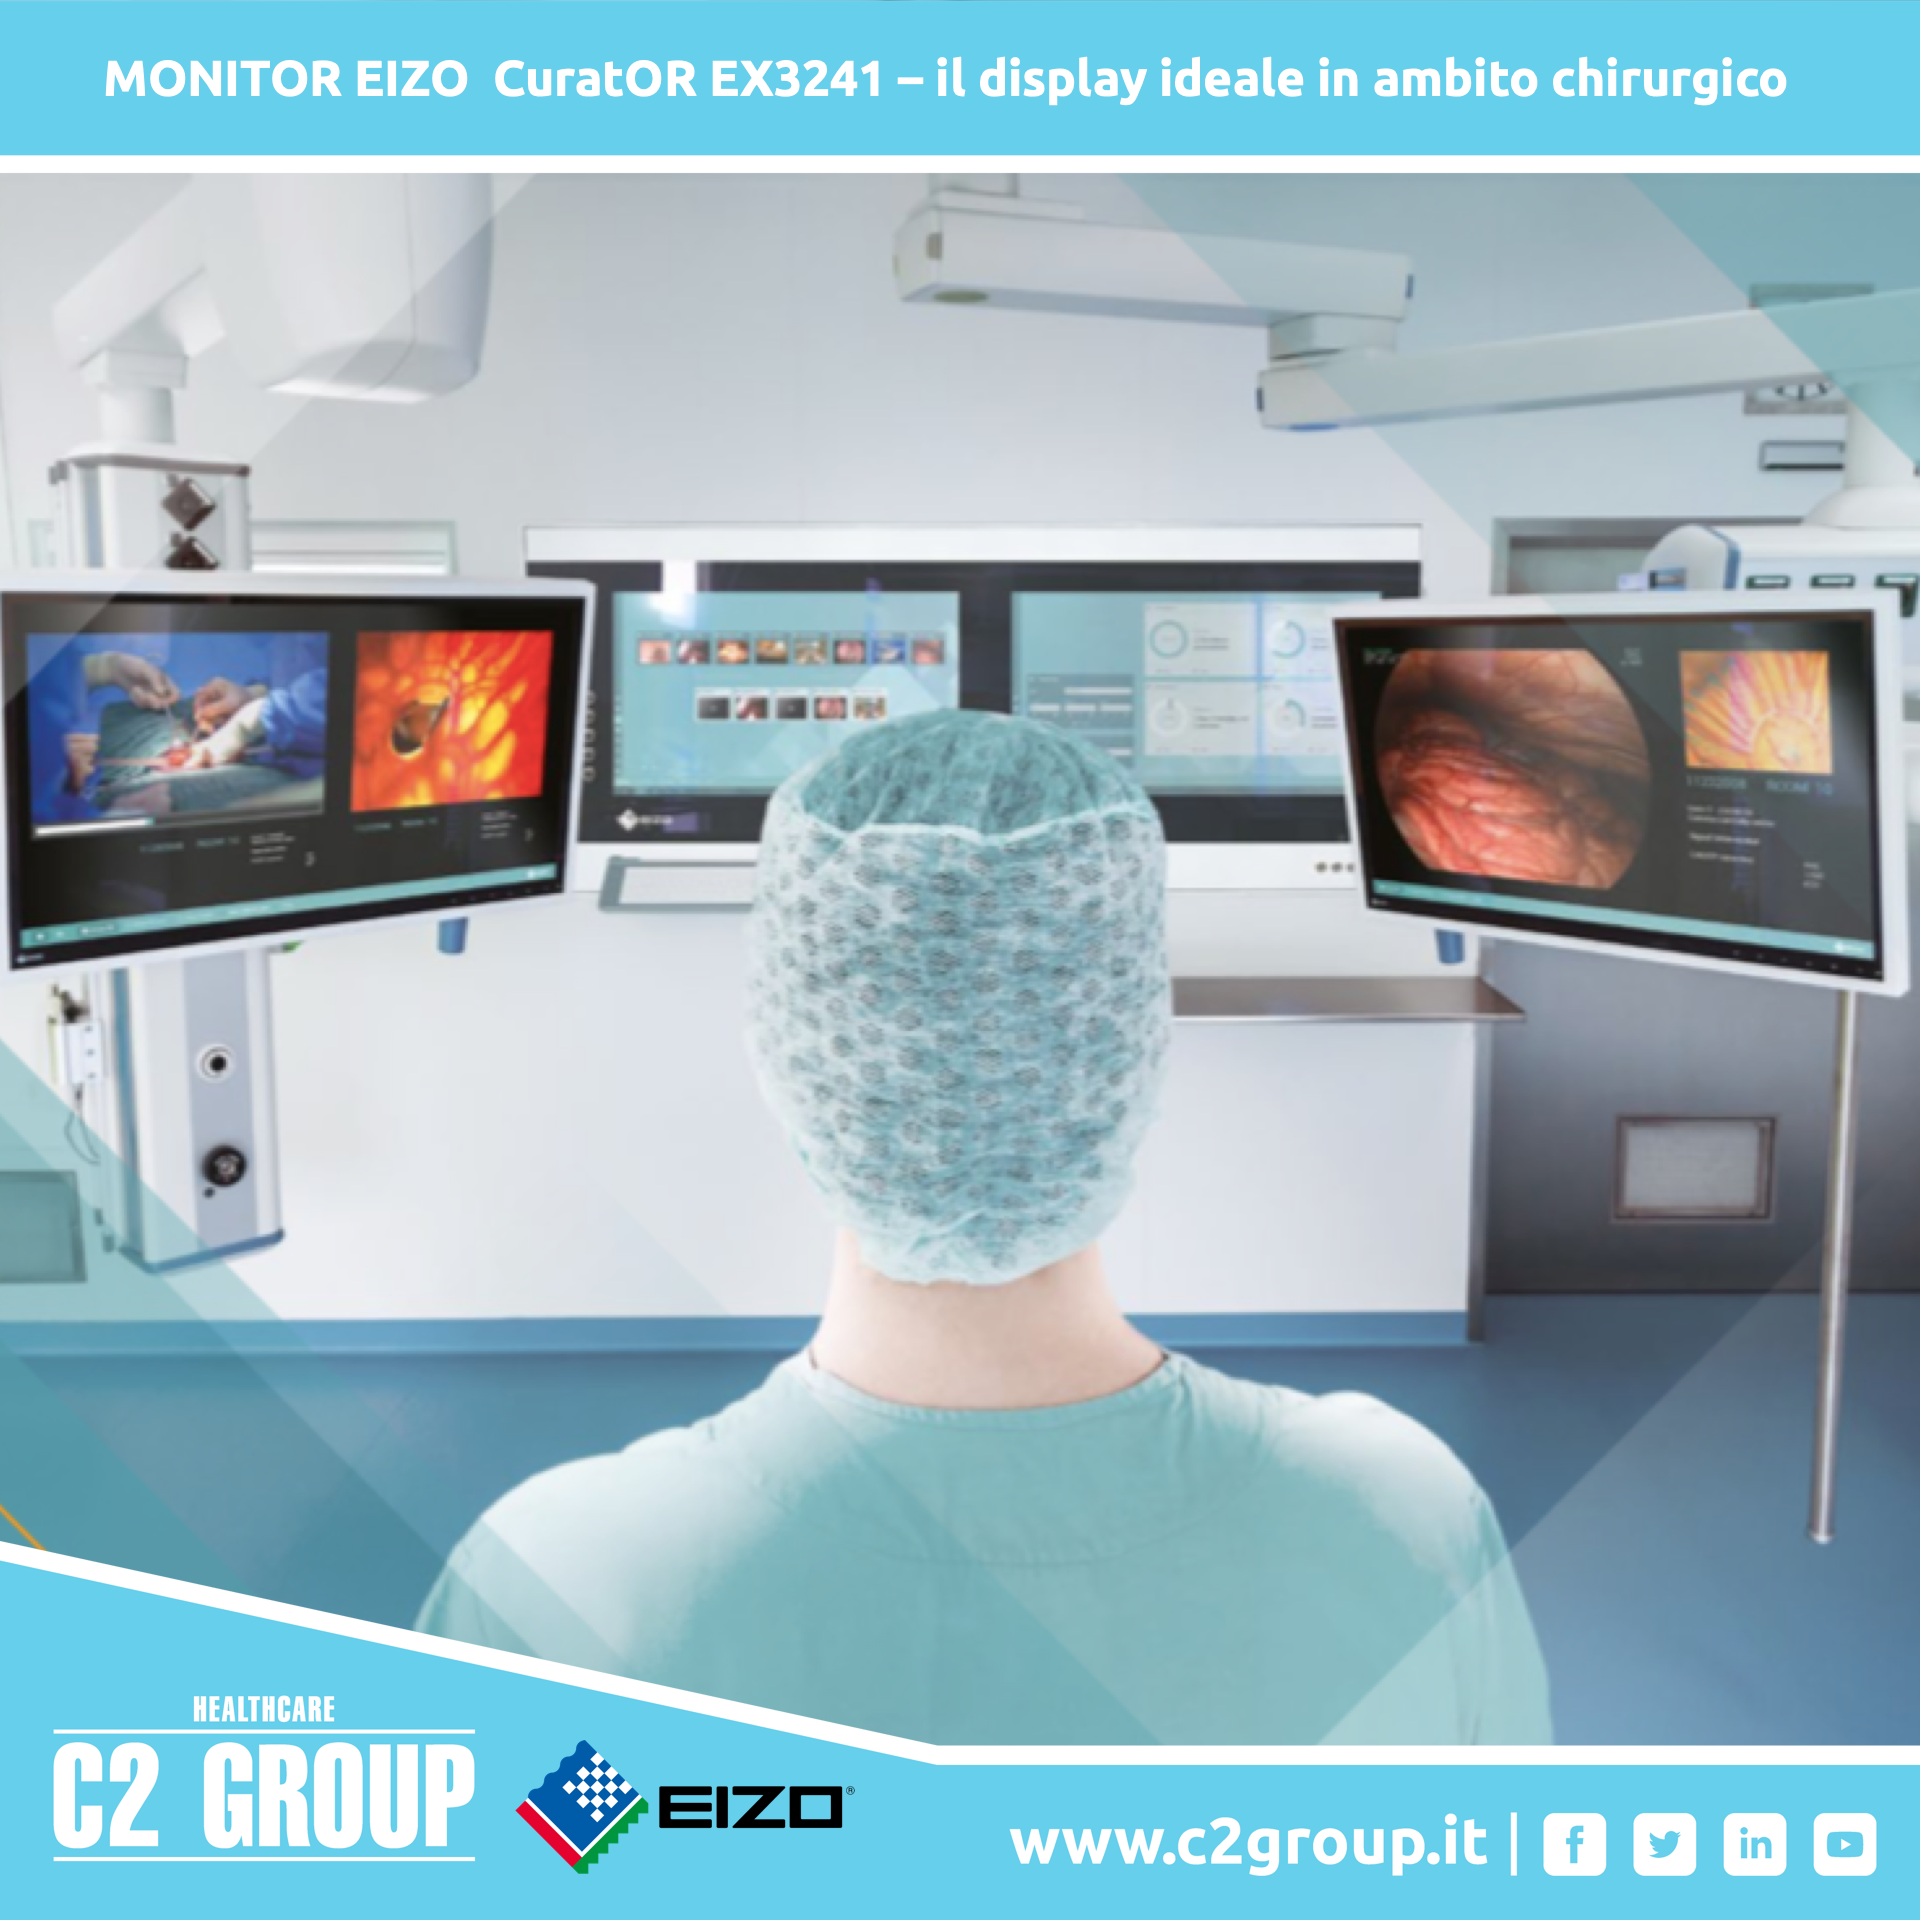 MONITOR EIZO 3241 C2GROUP